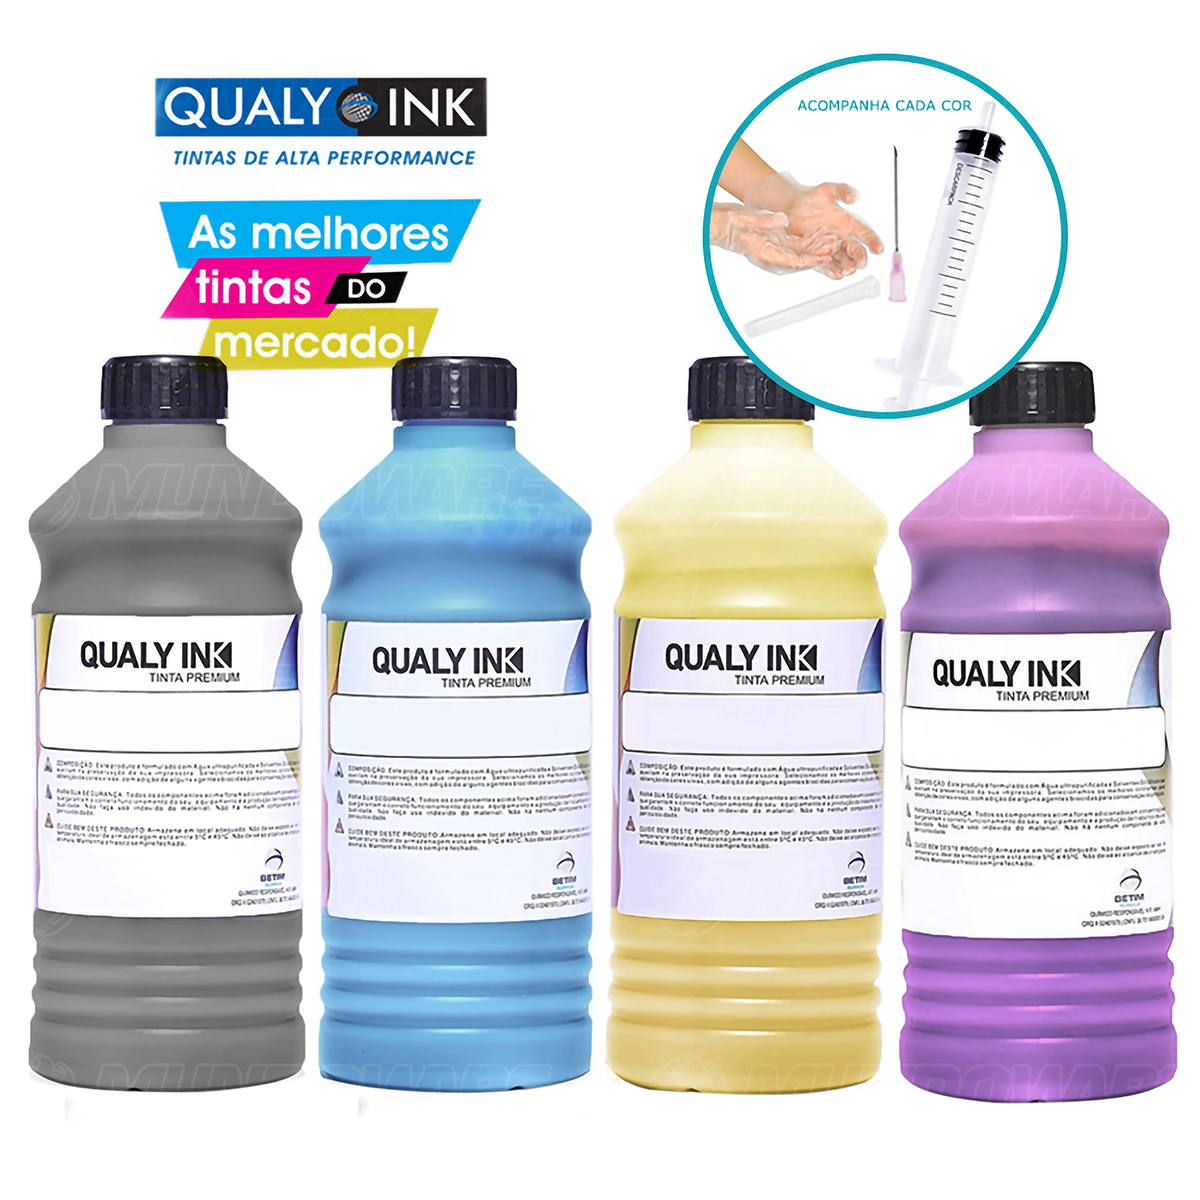 Kit 4 Cores Tinta Corante Qualy-Ink para Brother DCP-T300 T500w T800w T910w T4500dw T710w T4000dw CMYK Refil 4 de 1L